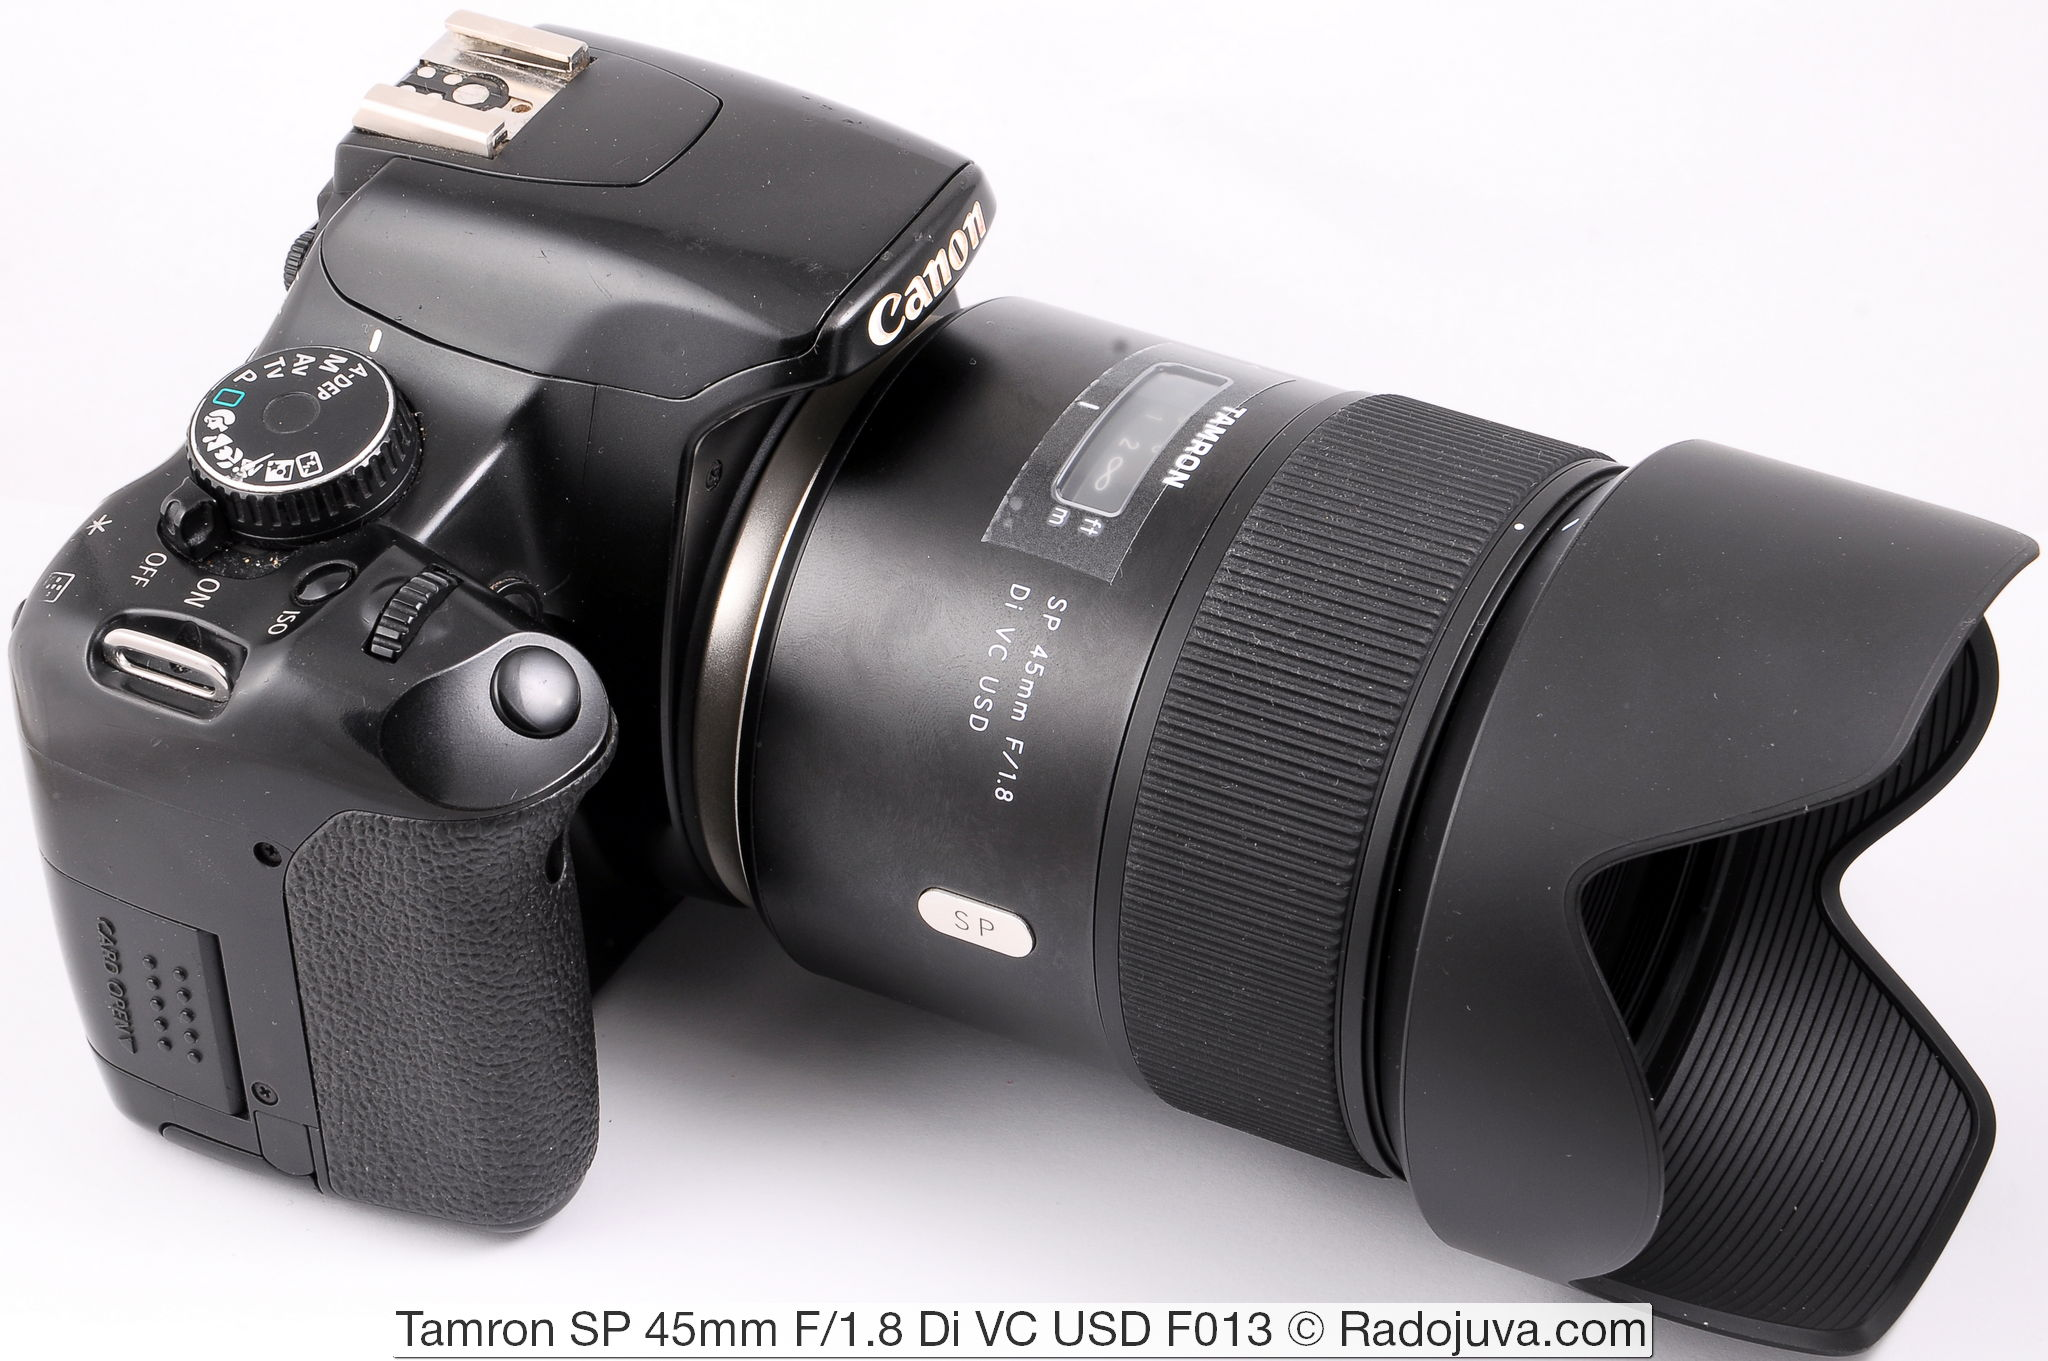 Tamron SP 45mm F/1.8 Di VC USD F013